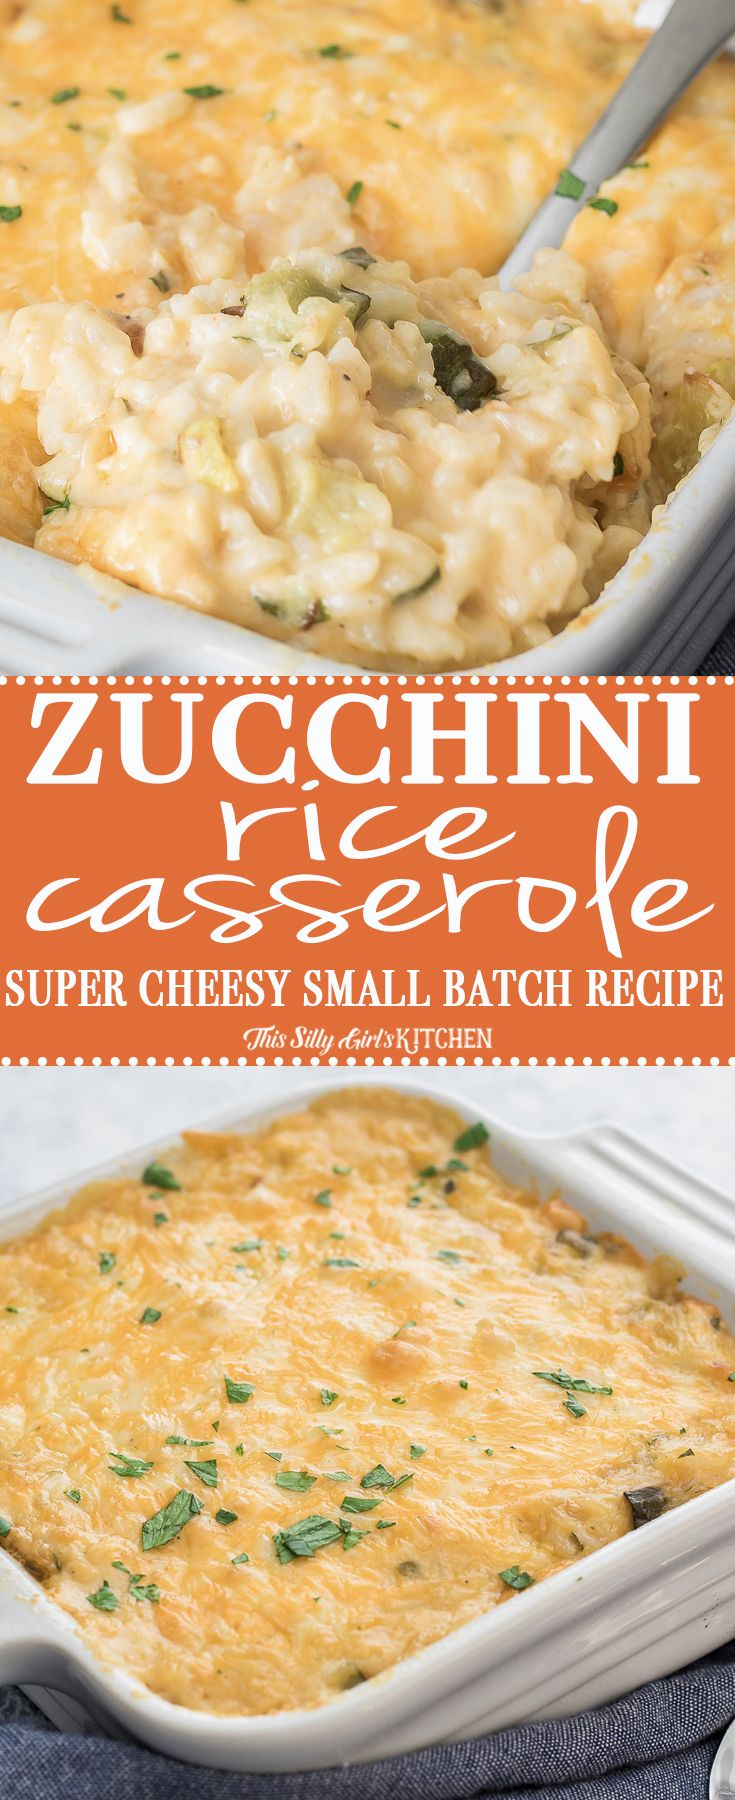 Easy and comforting - #Zucchini #Rice #Casserole, a decadent small batch recipe for a creamy, comforting side dish! #Recipe from ThisSillyGirlsKitchen.com